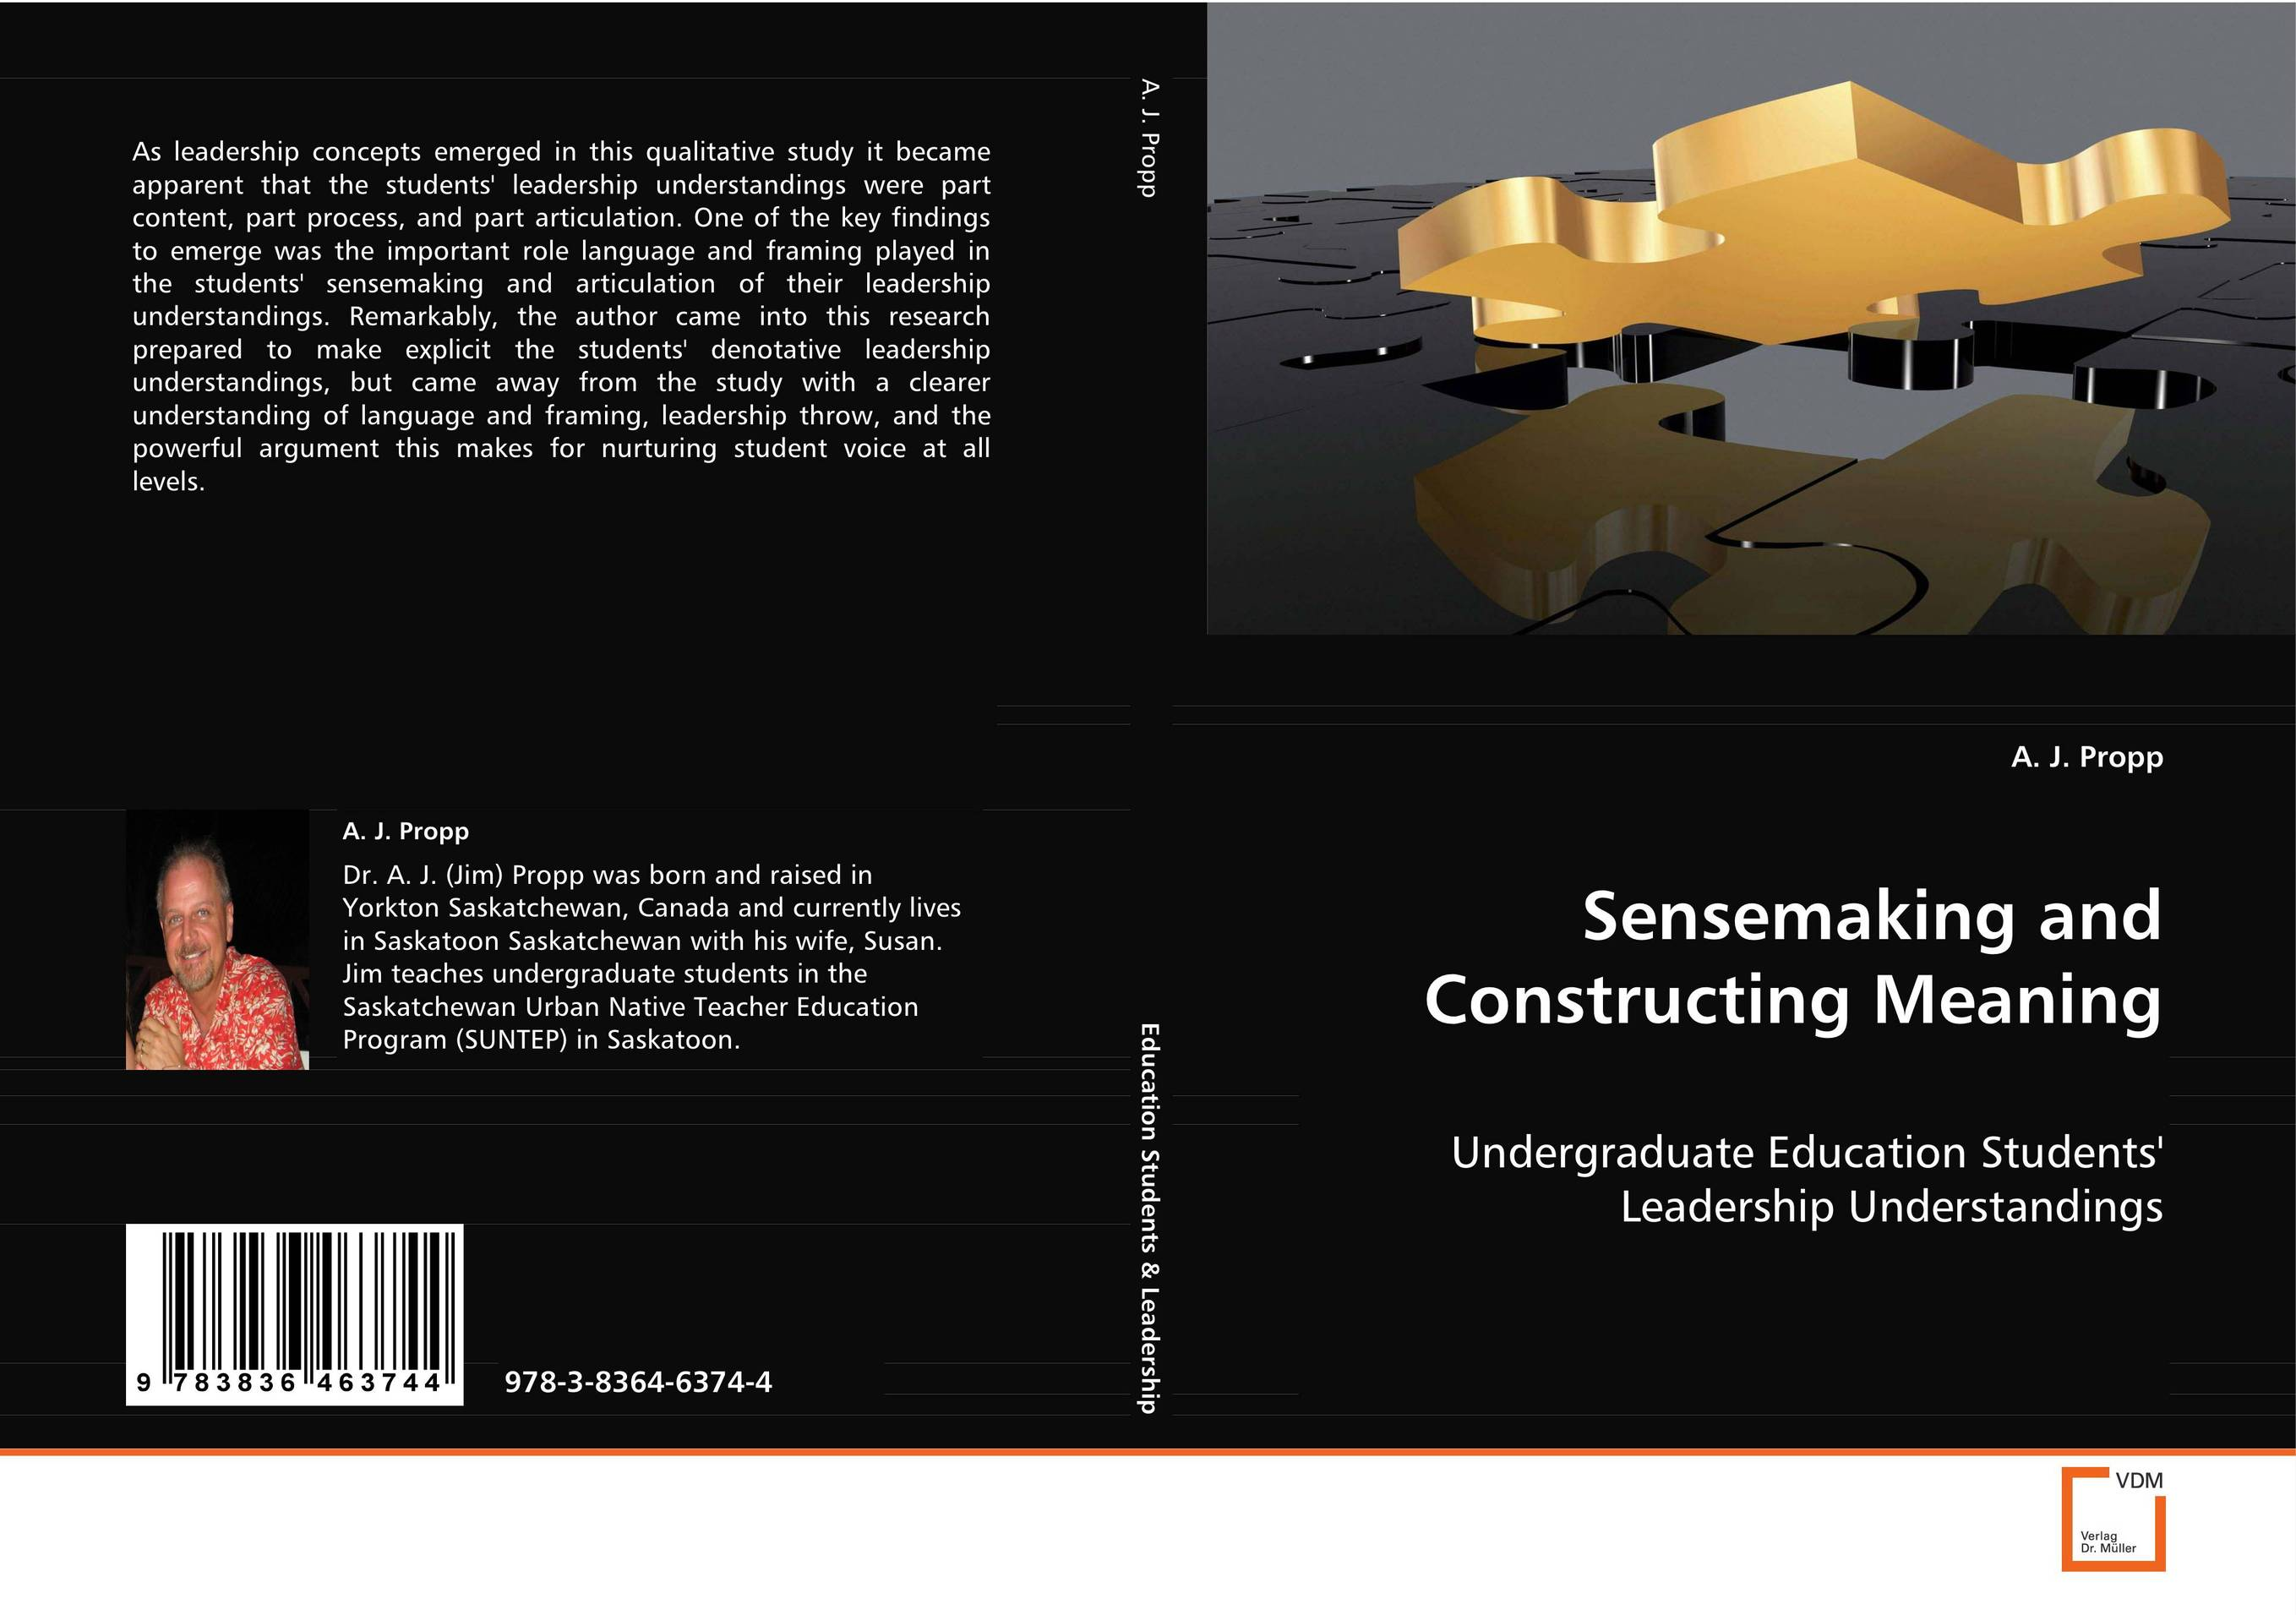 Sensemaking and Constructing Meaning jeffrey sonnenfeld leadership and governance from the inside out